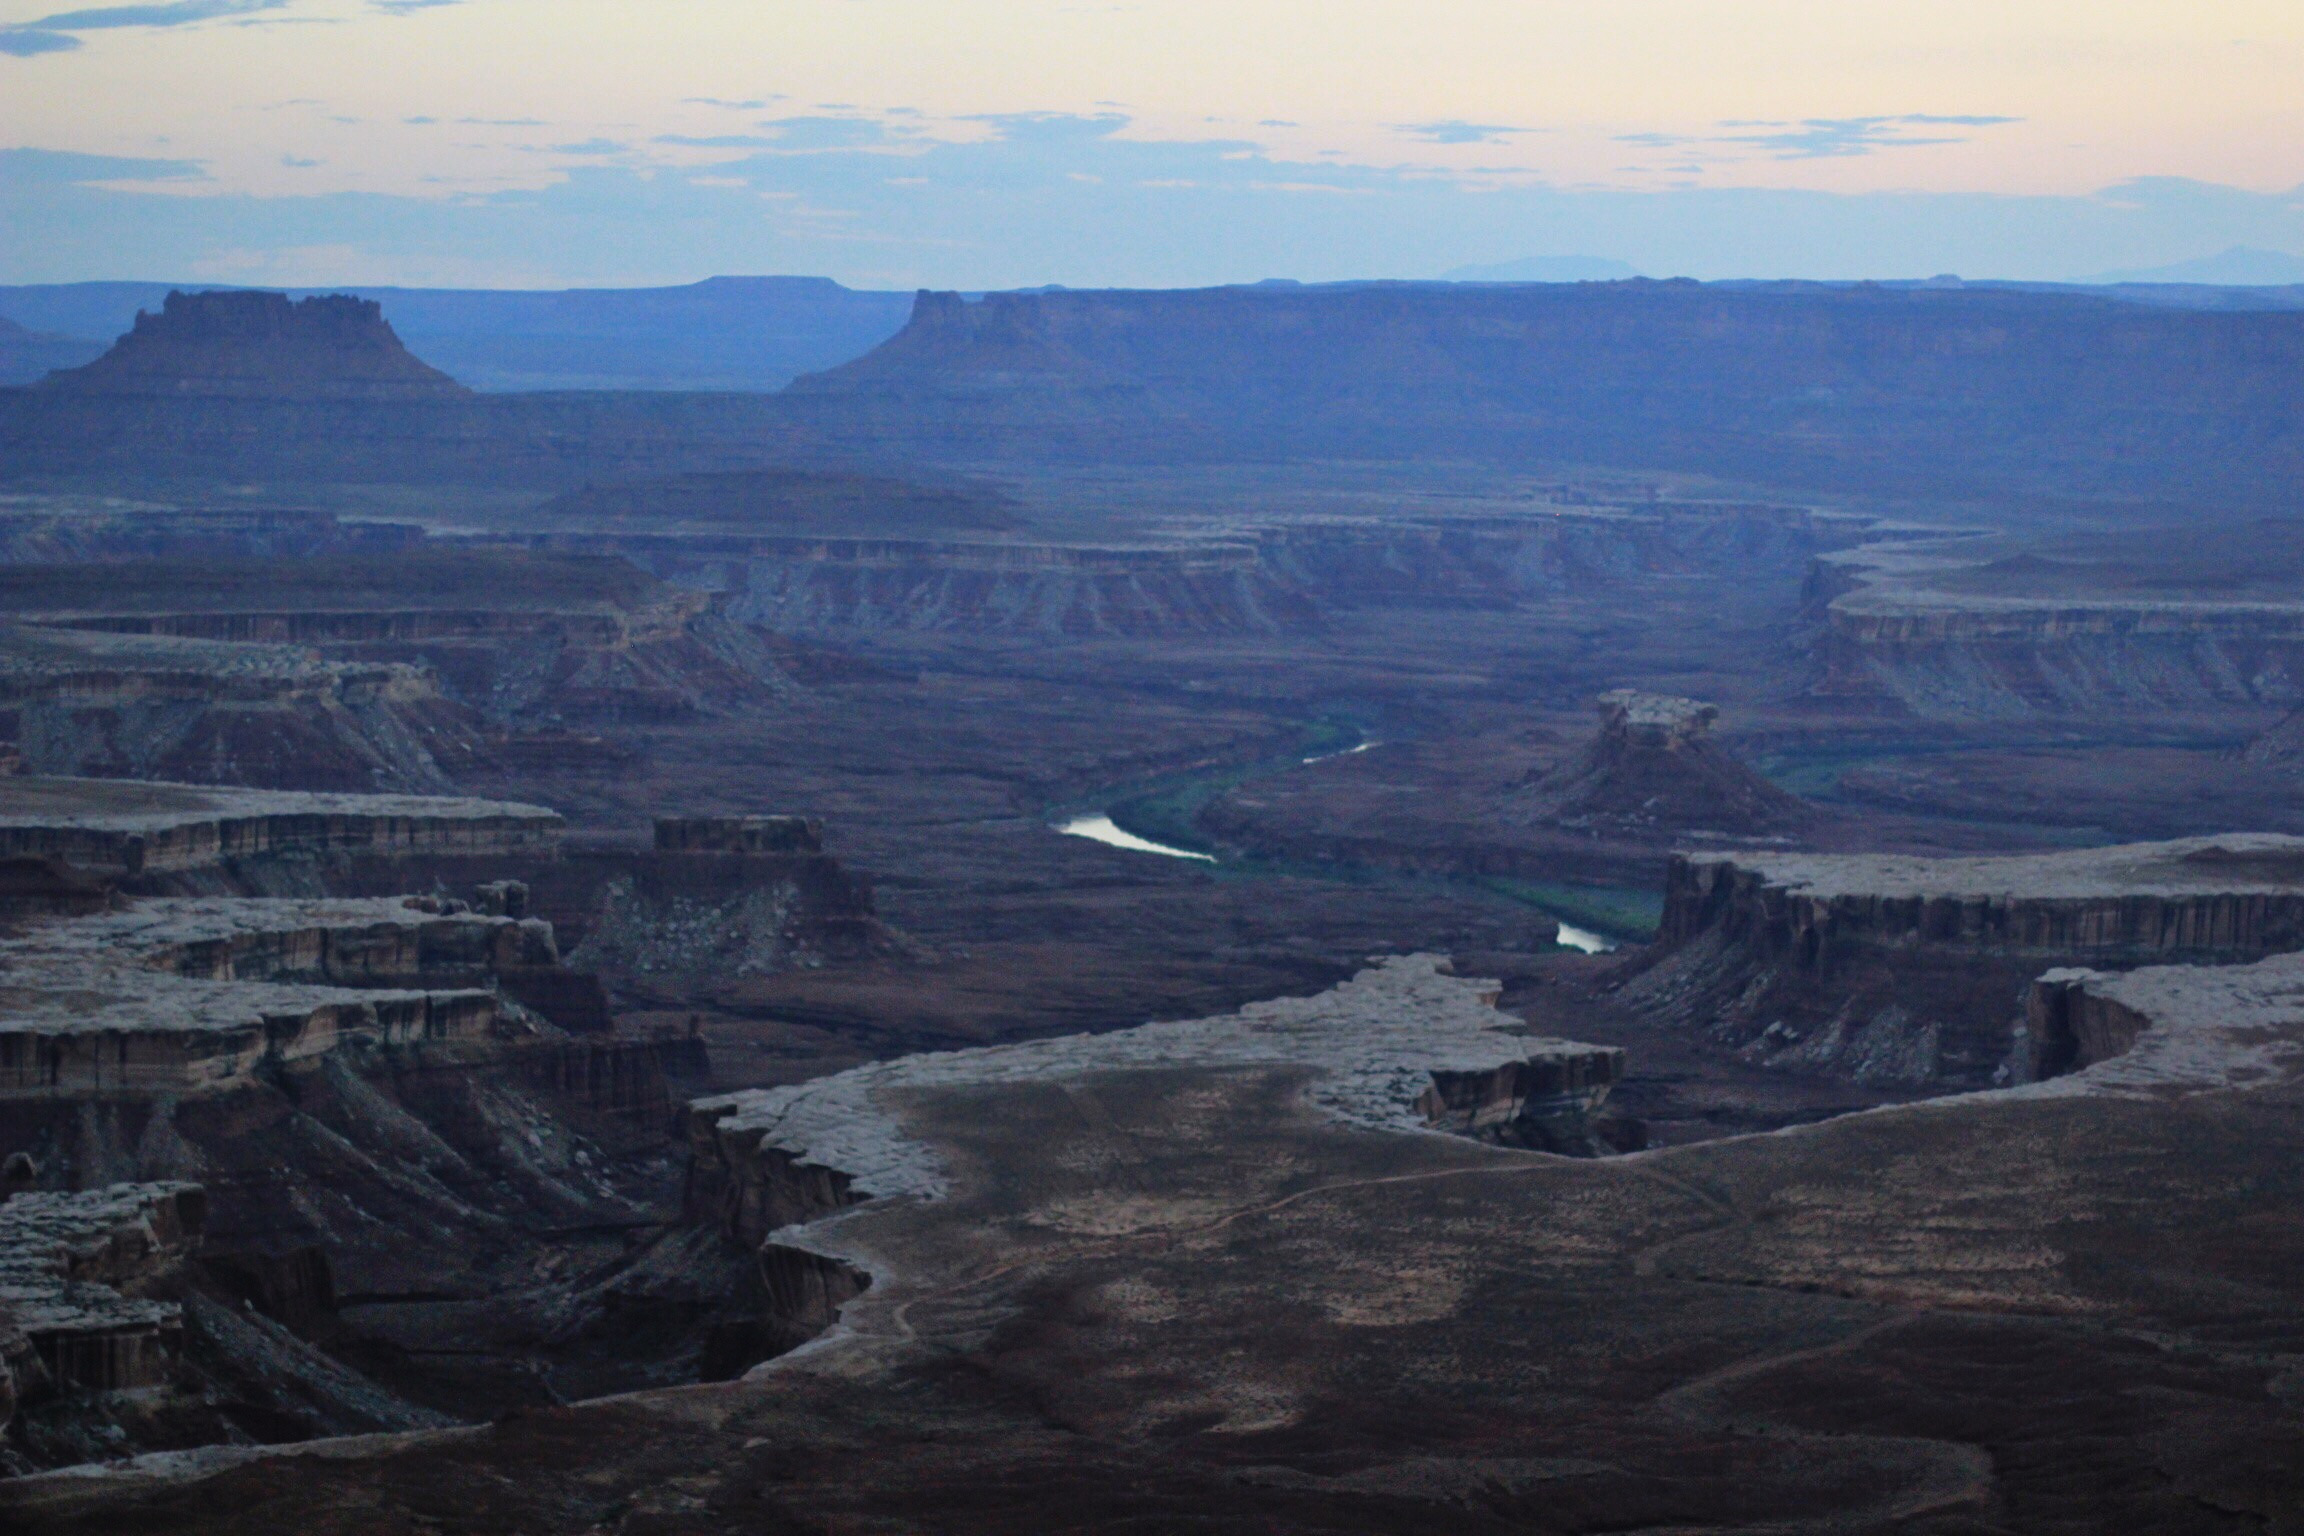 ...and this is what the shadowy Canyon looked like during sunset. We were totally alone.